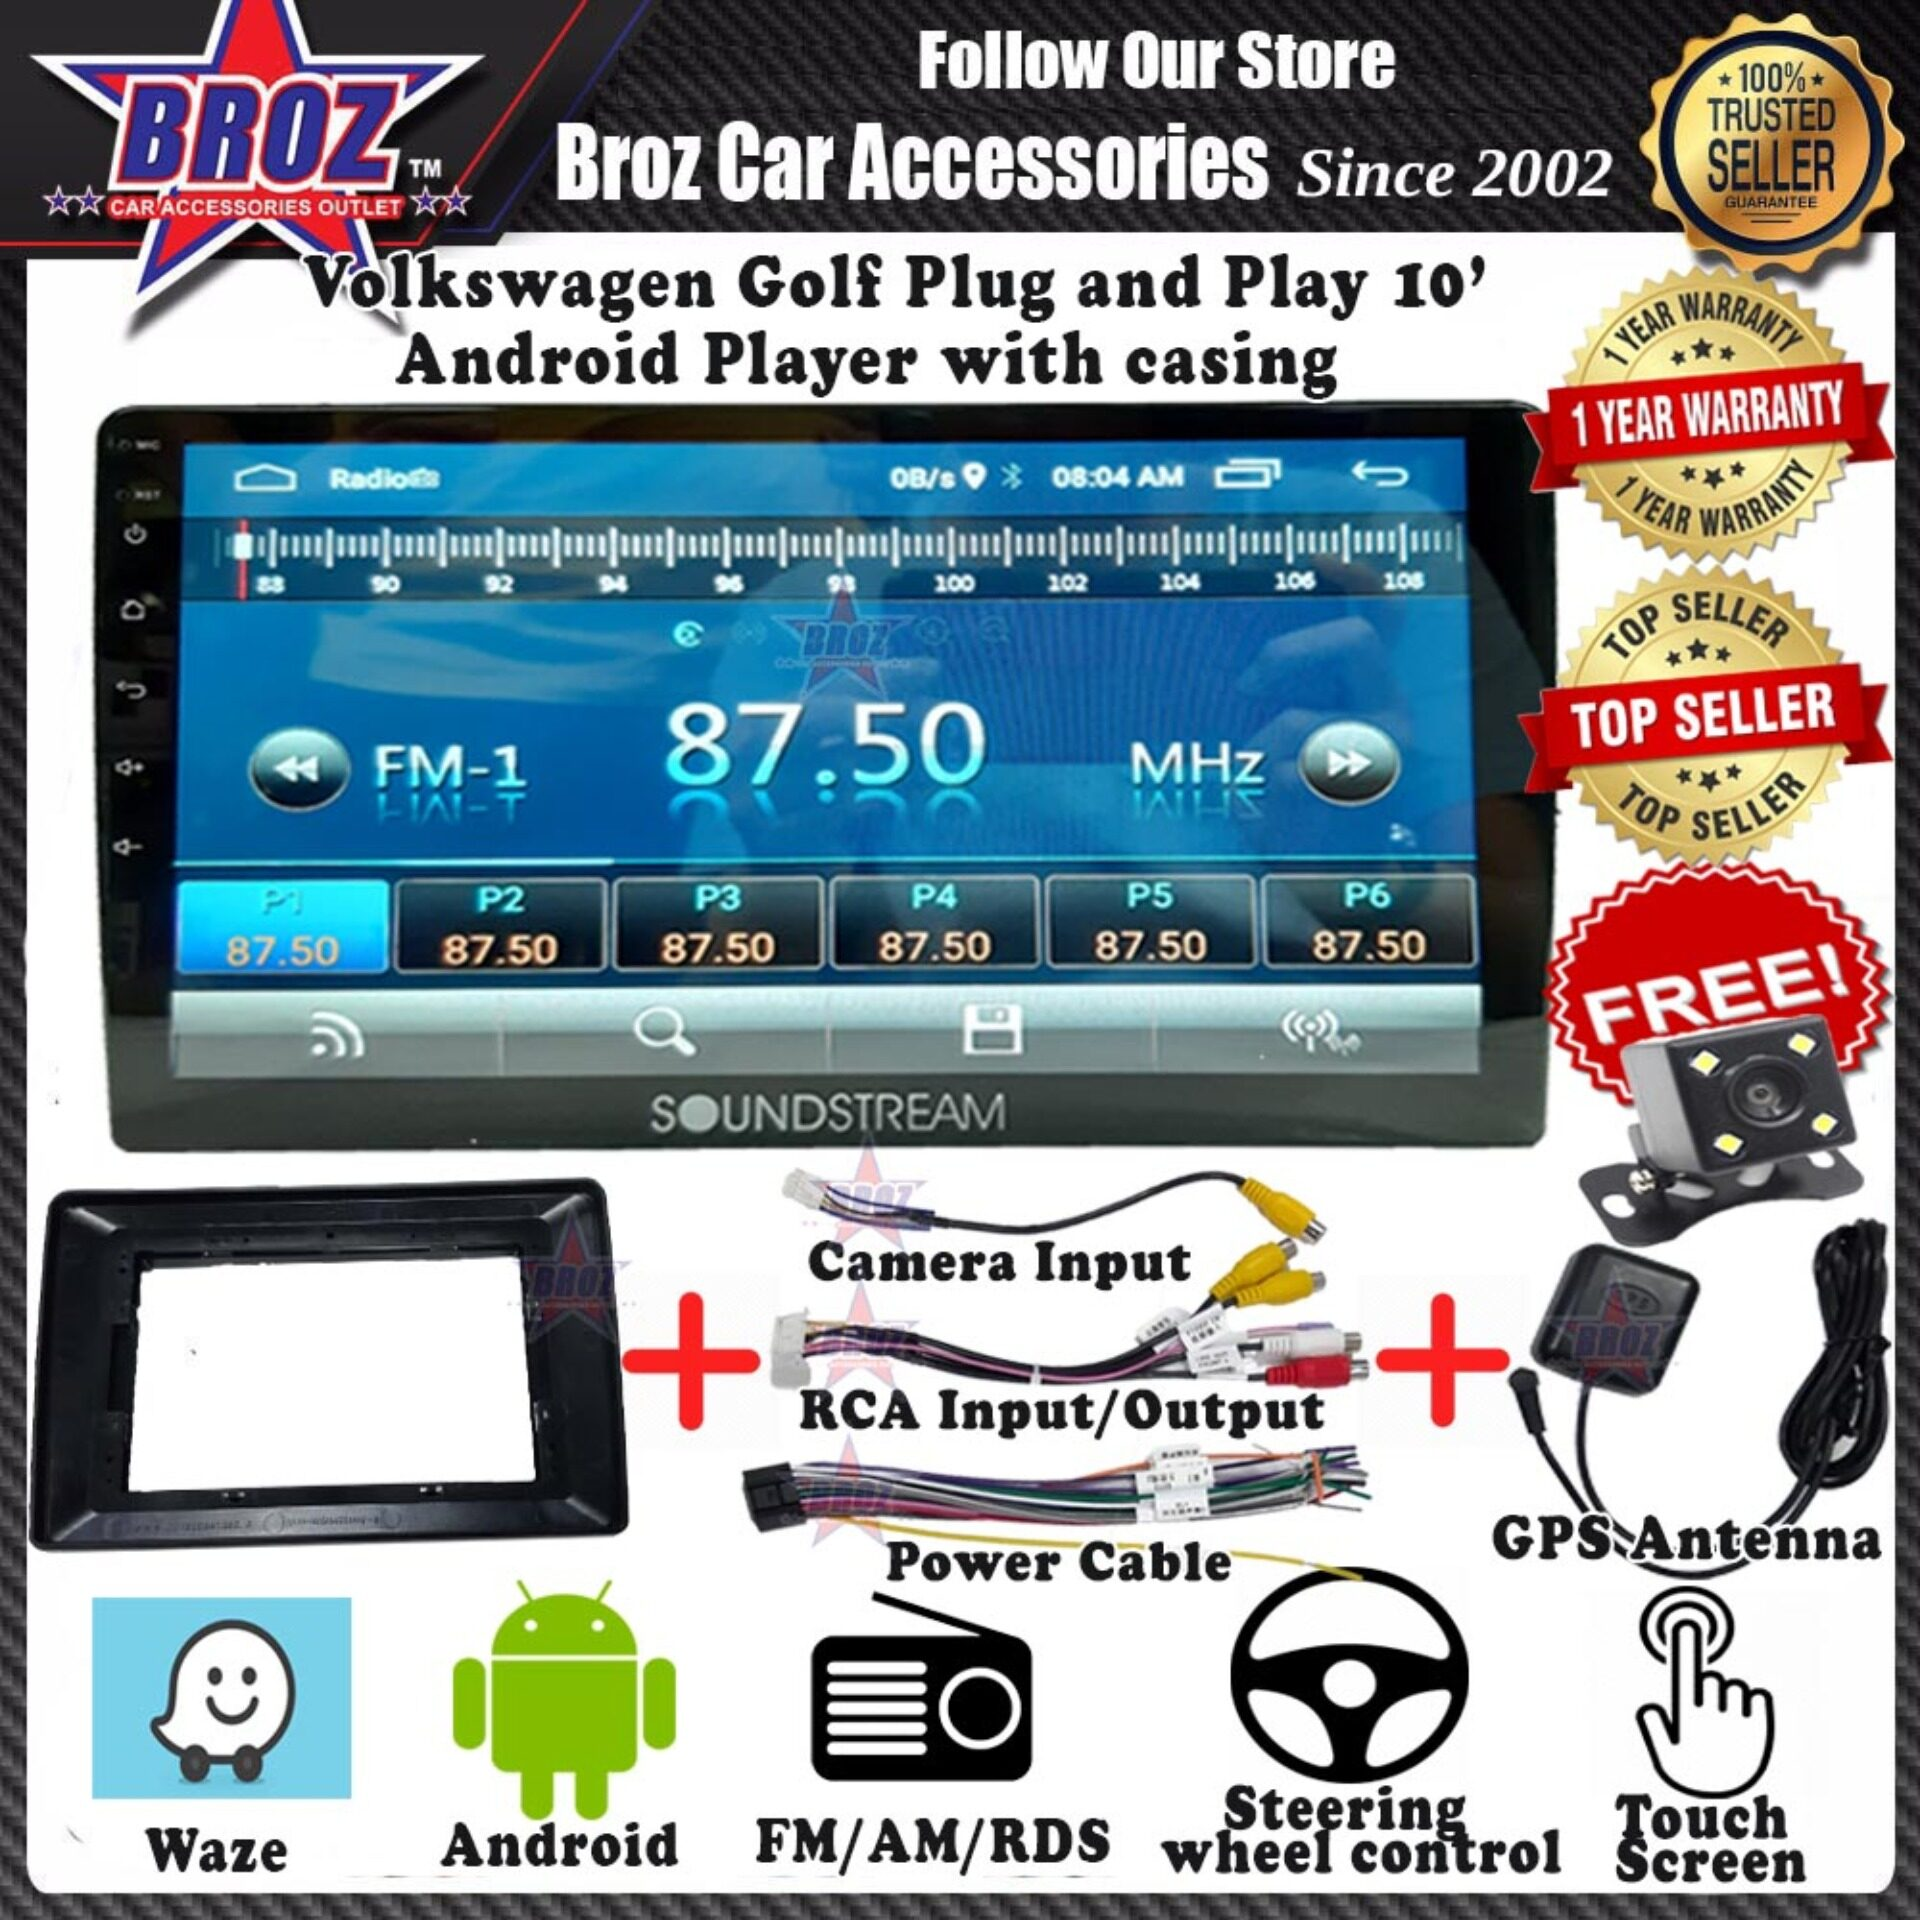 Volkswagen Golf 10  Android Player 1GB + 16G 8.1 Universal Car Multimedia Head Unit Radio built in GPS Bluetooth WIFI USB AUX Touch Screen + Camera